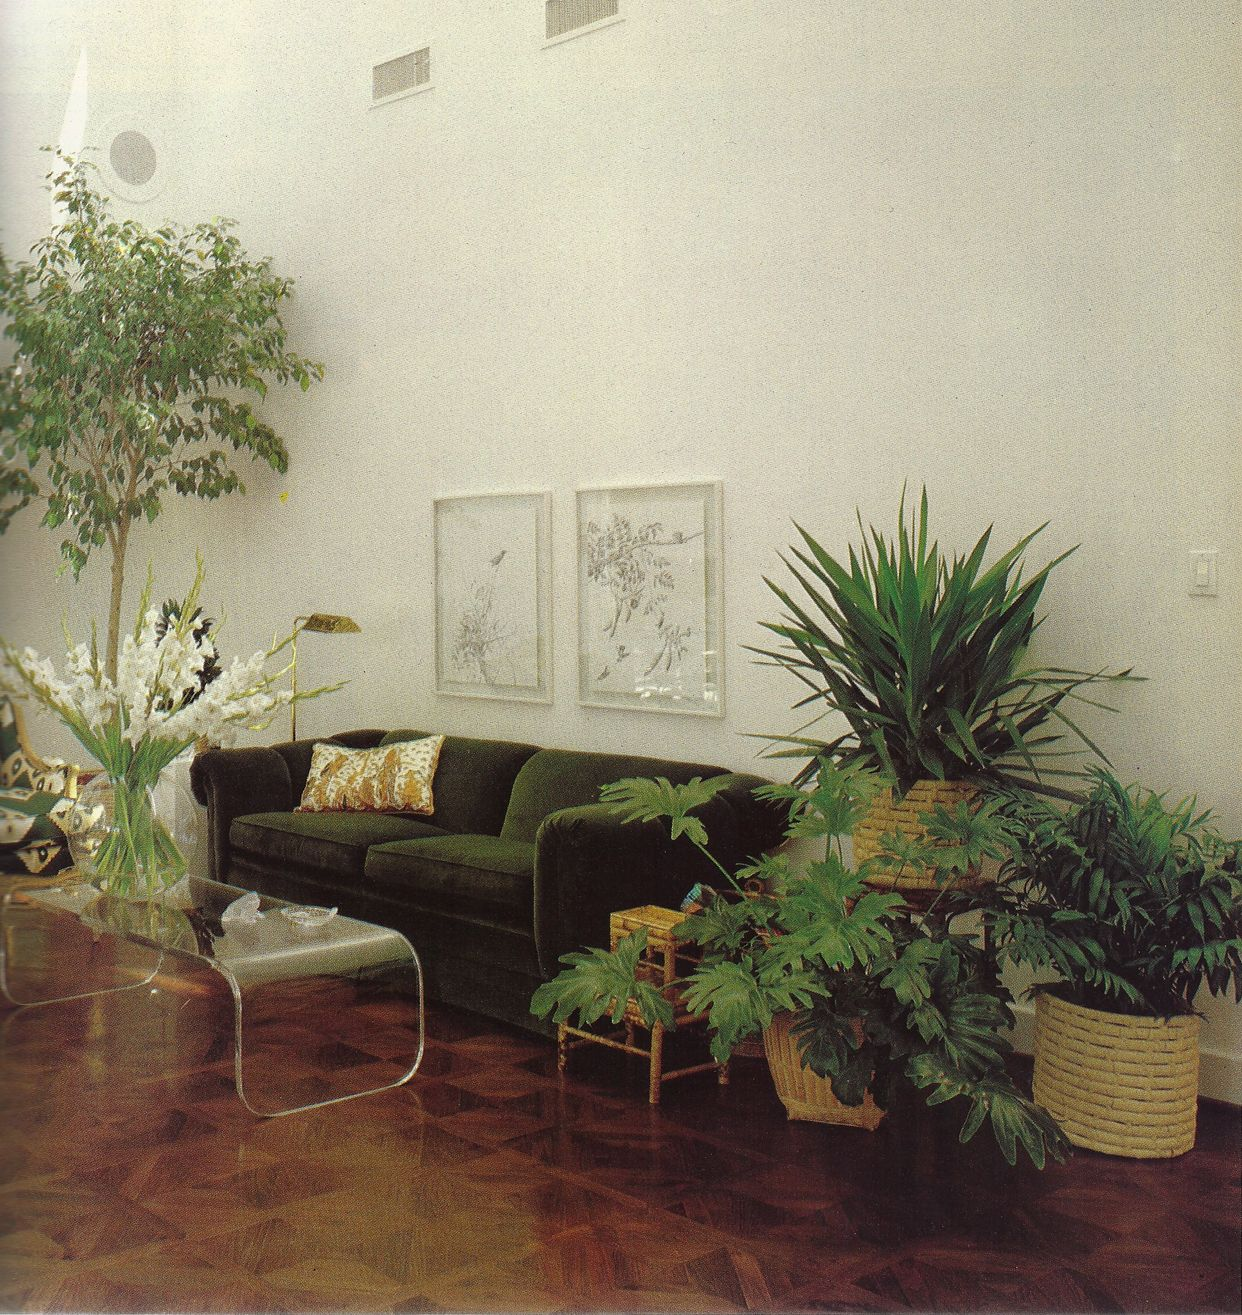 Better Homes and Gardens New Decorating Book, 1981 | house plants ...